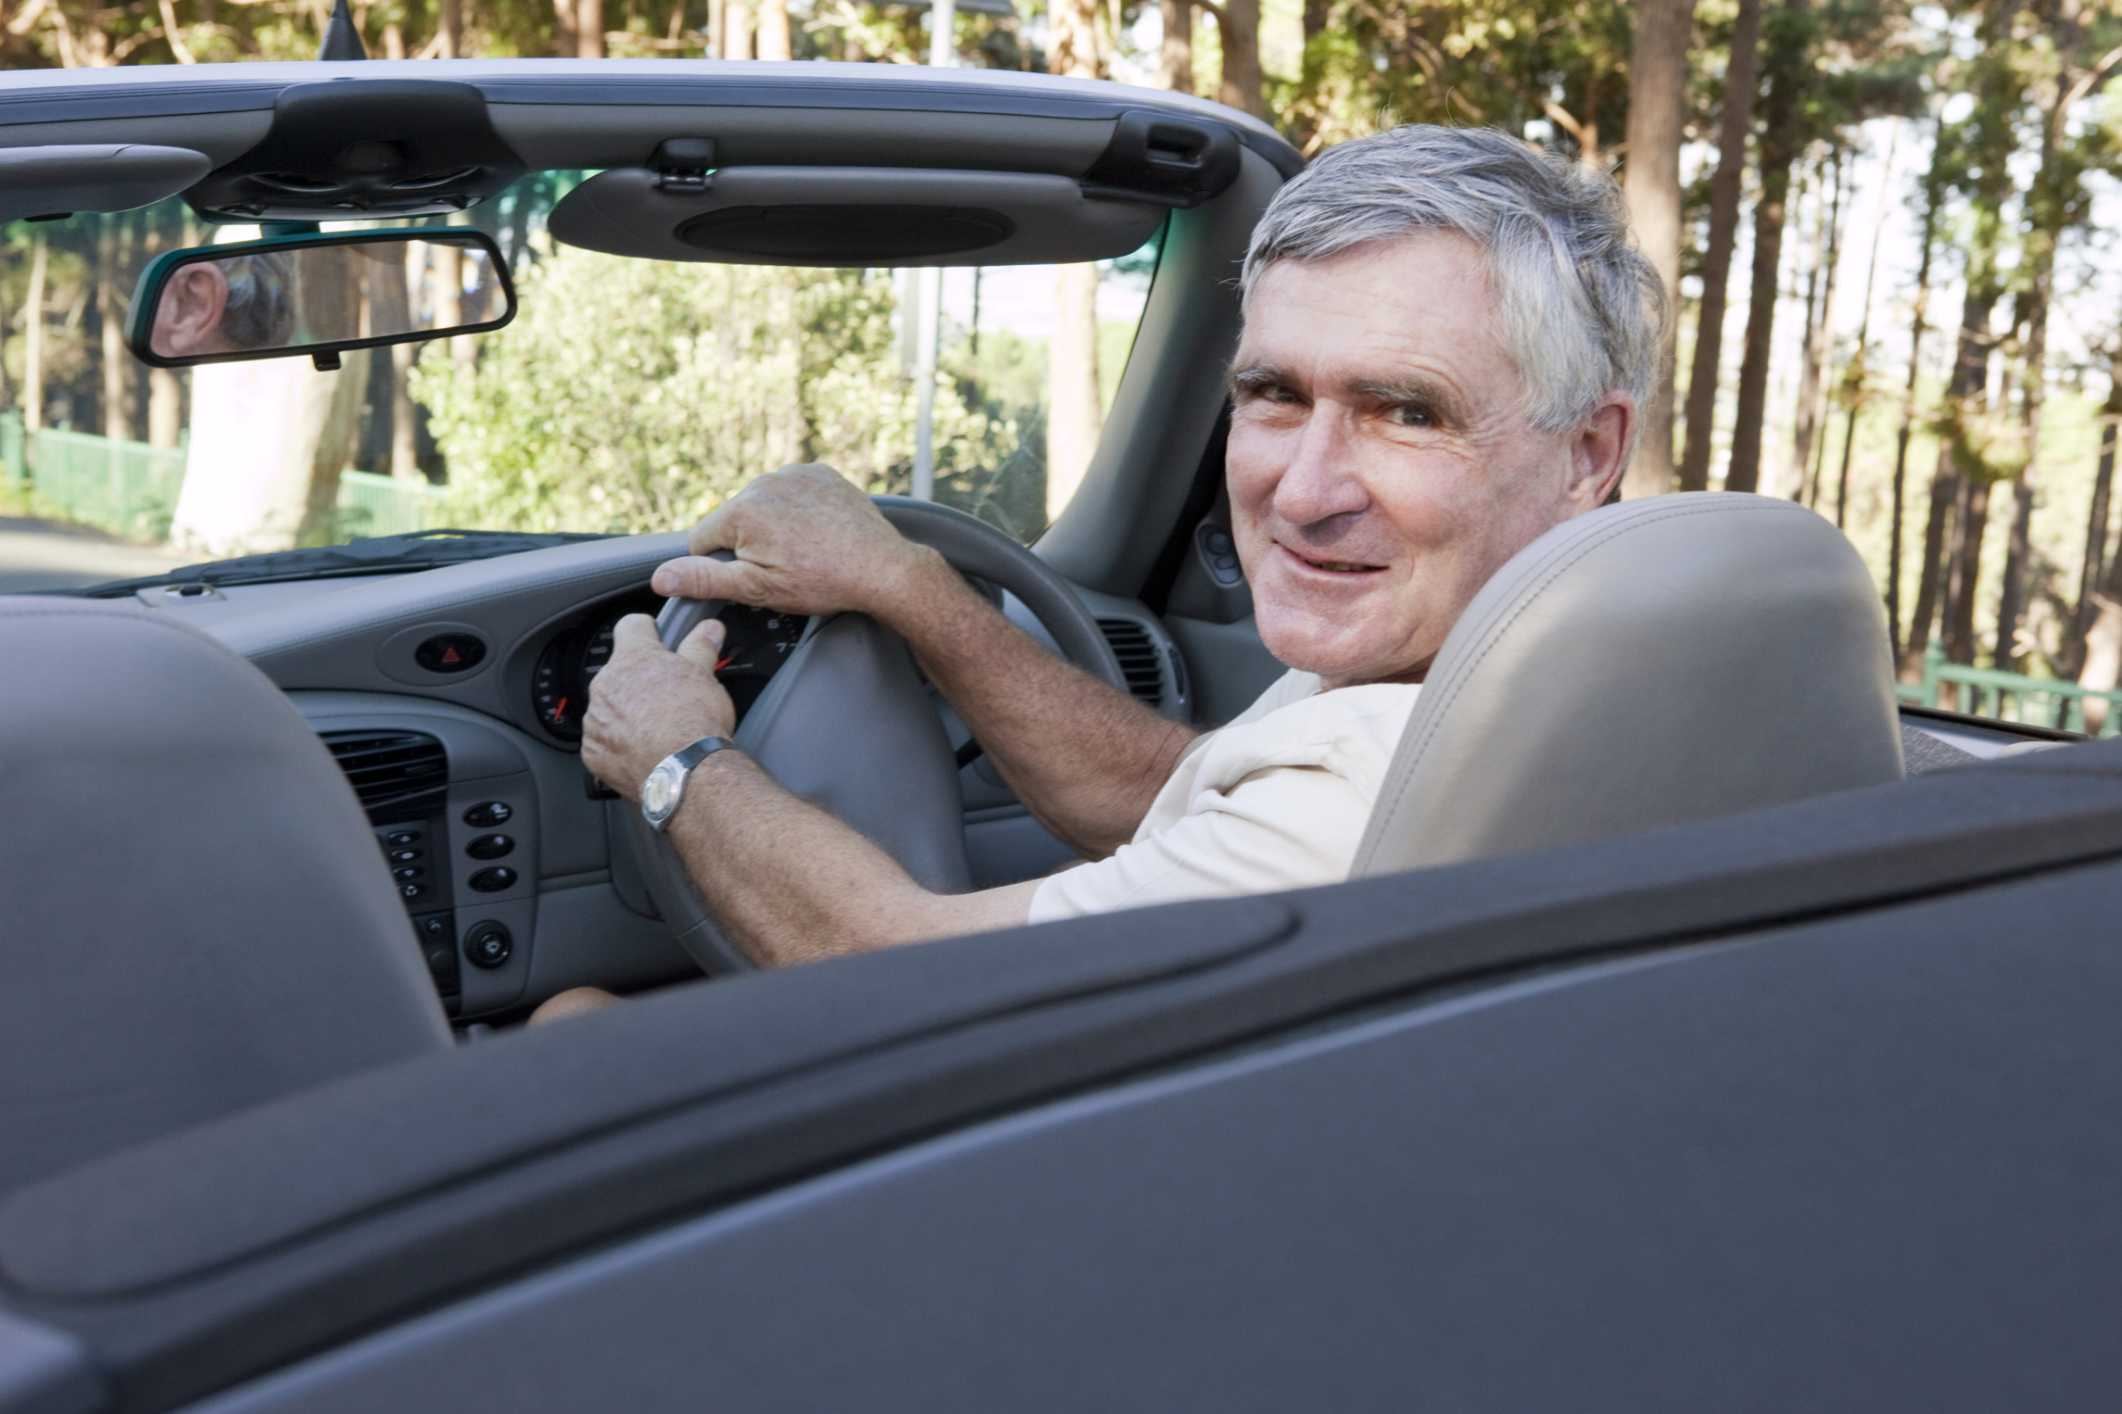 ee5c811cf0 7 Signs Your Spouse Is Having a Midlife Crisis